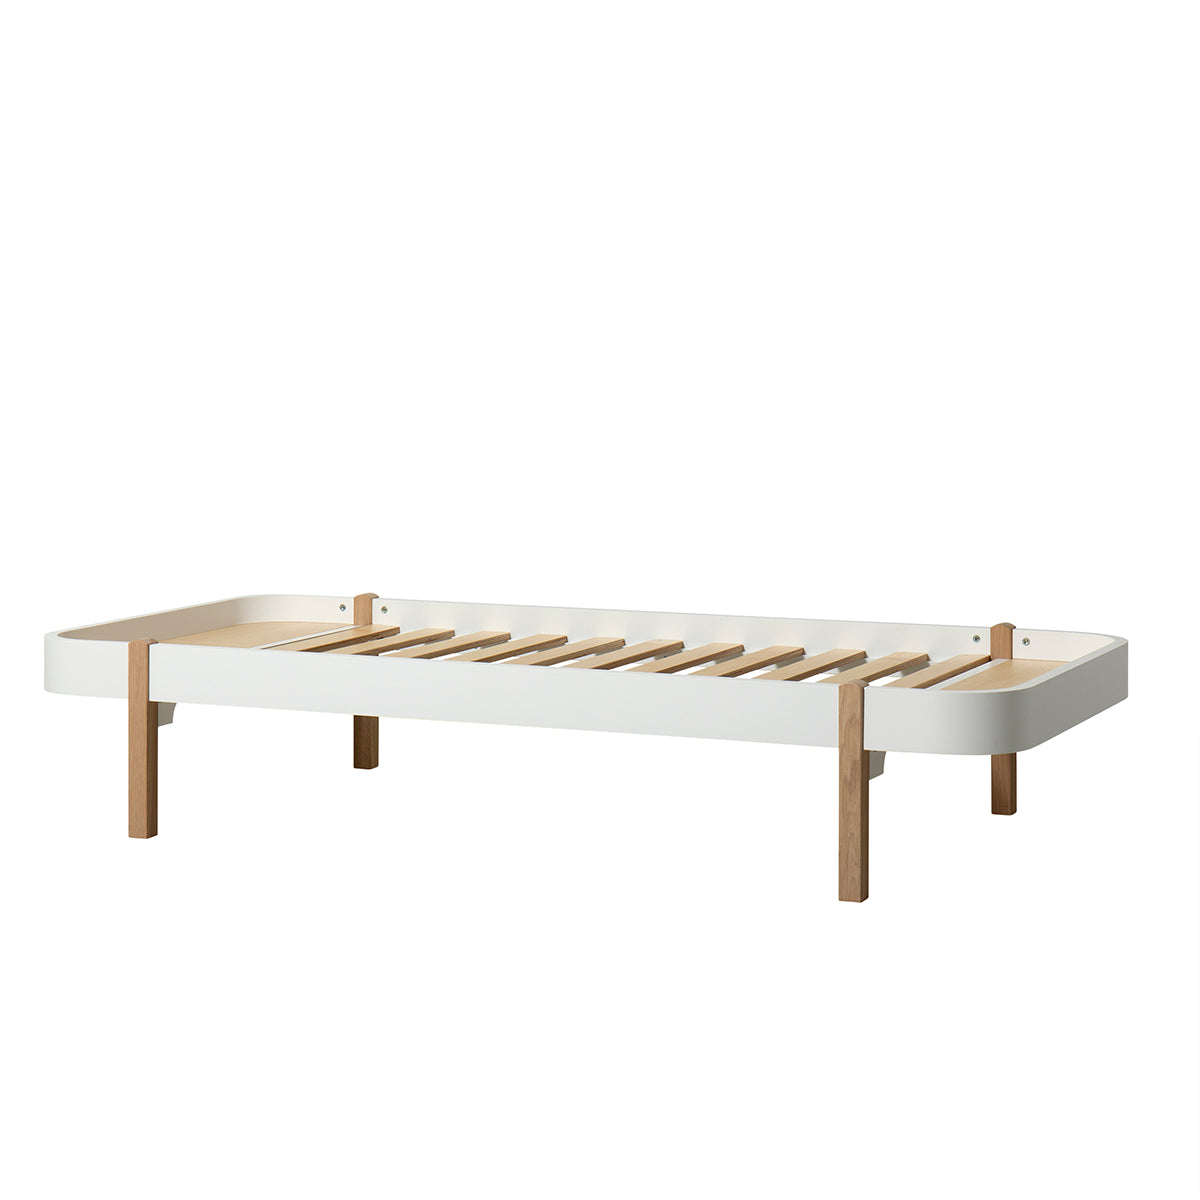 Oliver Furniture Wood Lounger 90 x 200cm, weiss/Eiche